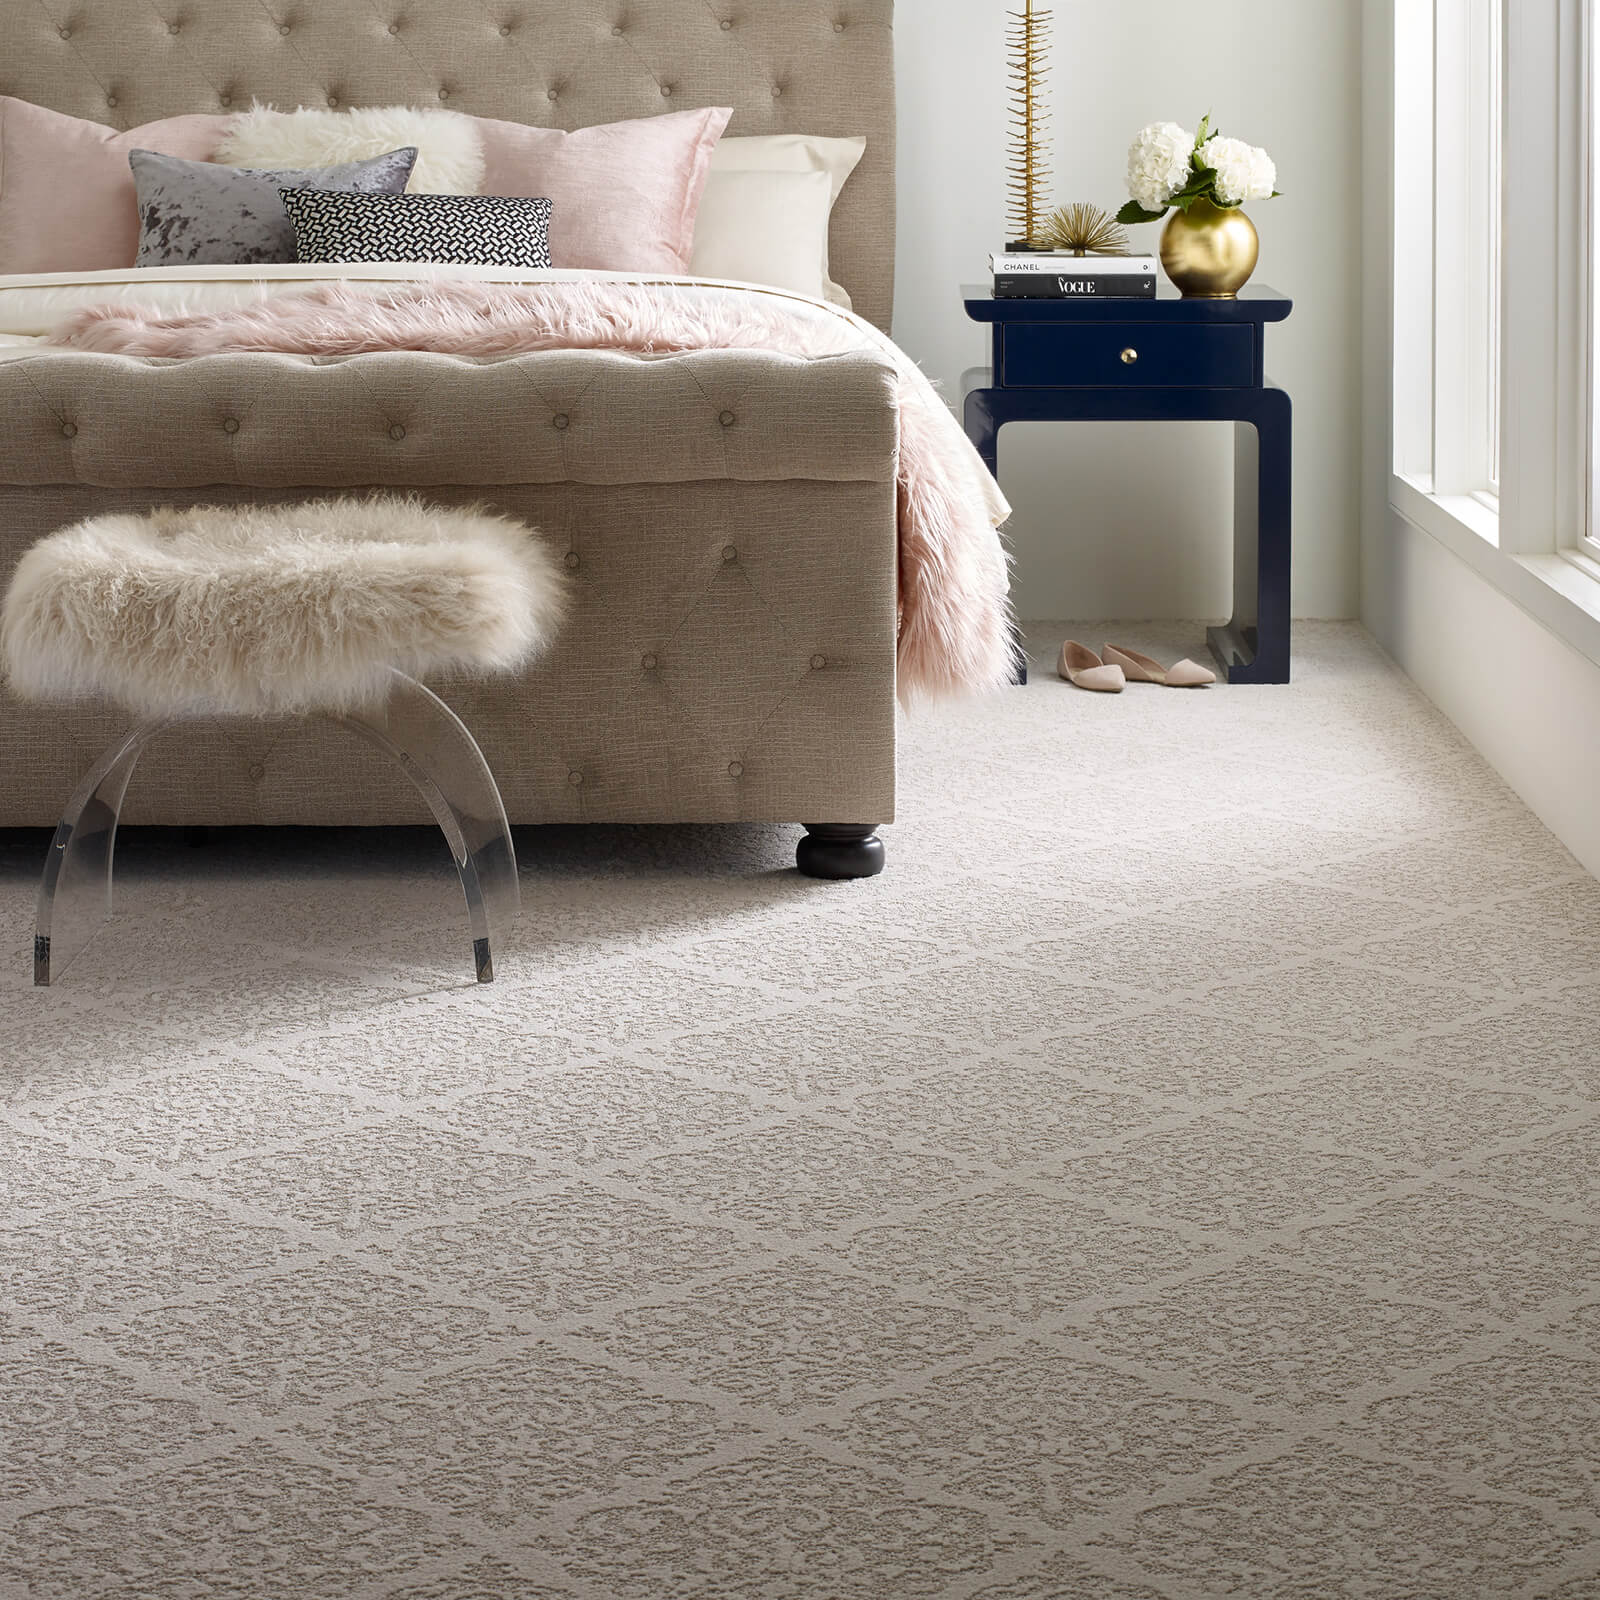 Shaw floors chateau carpet